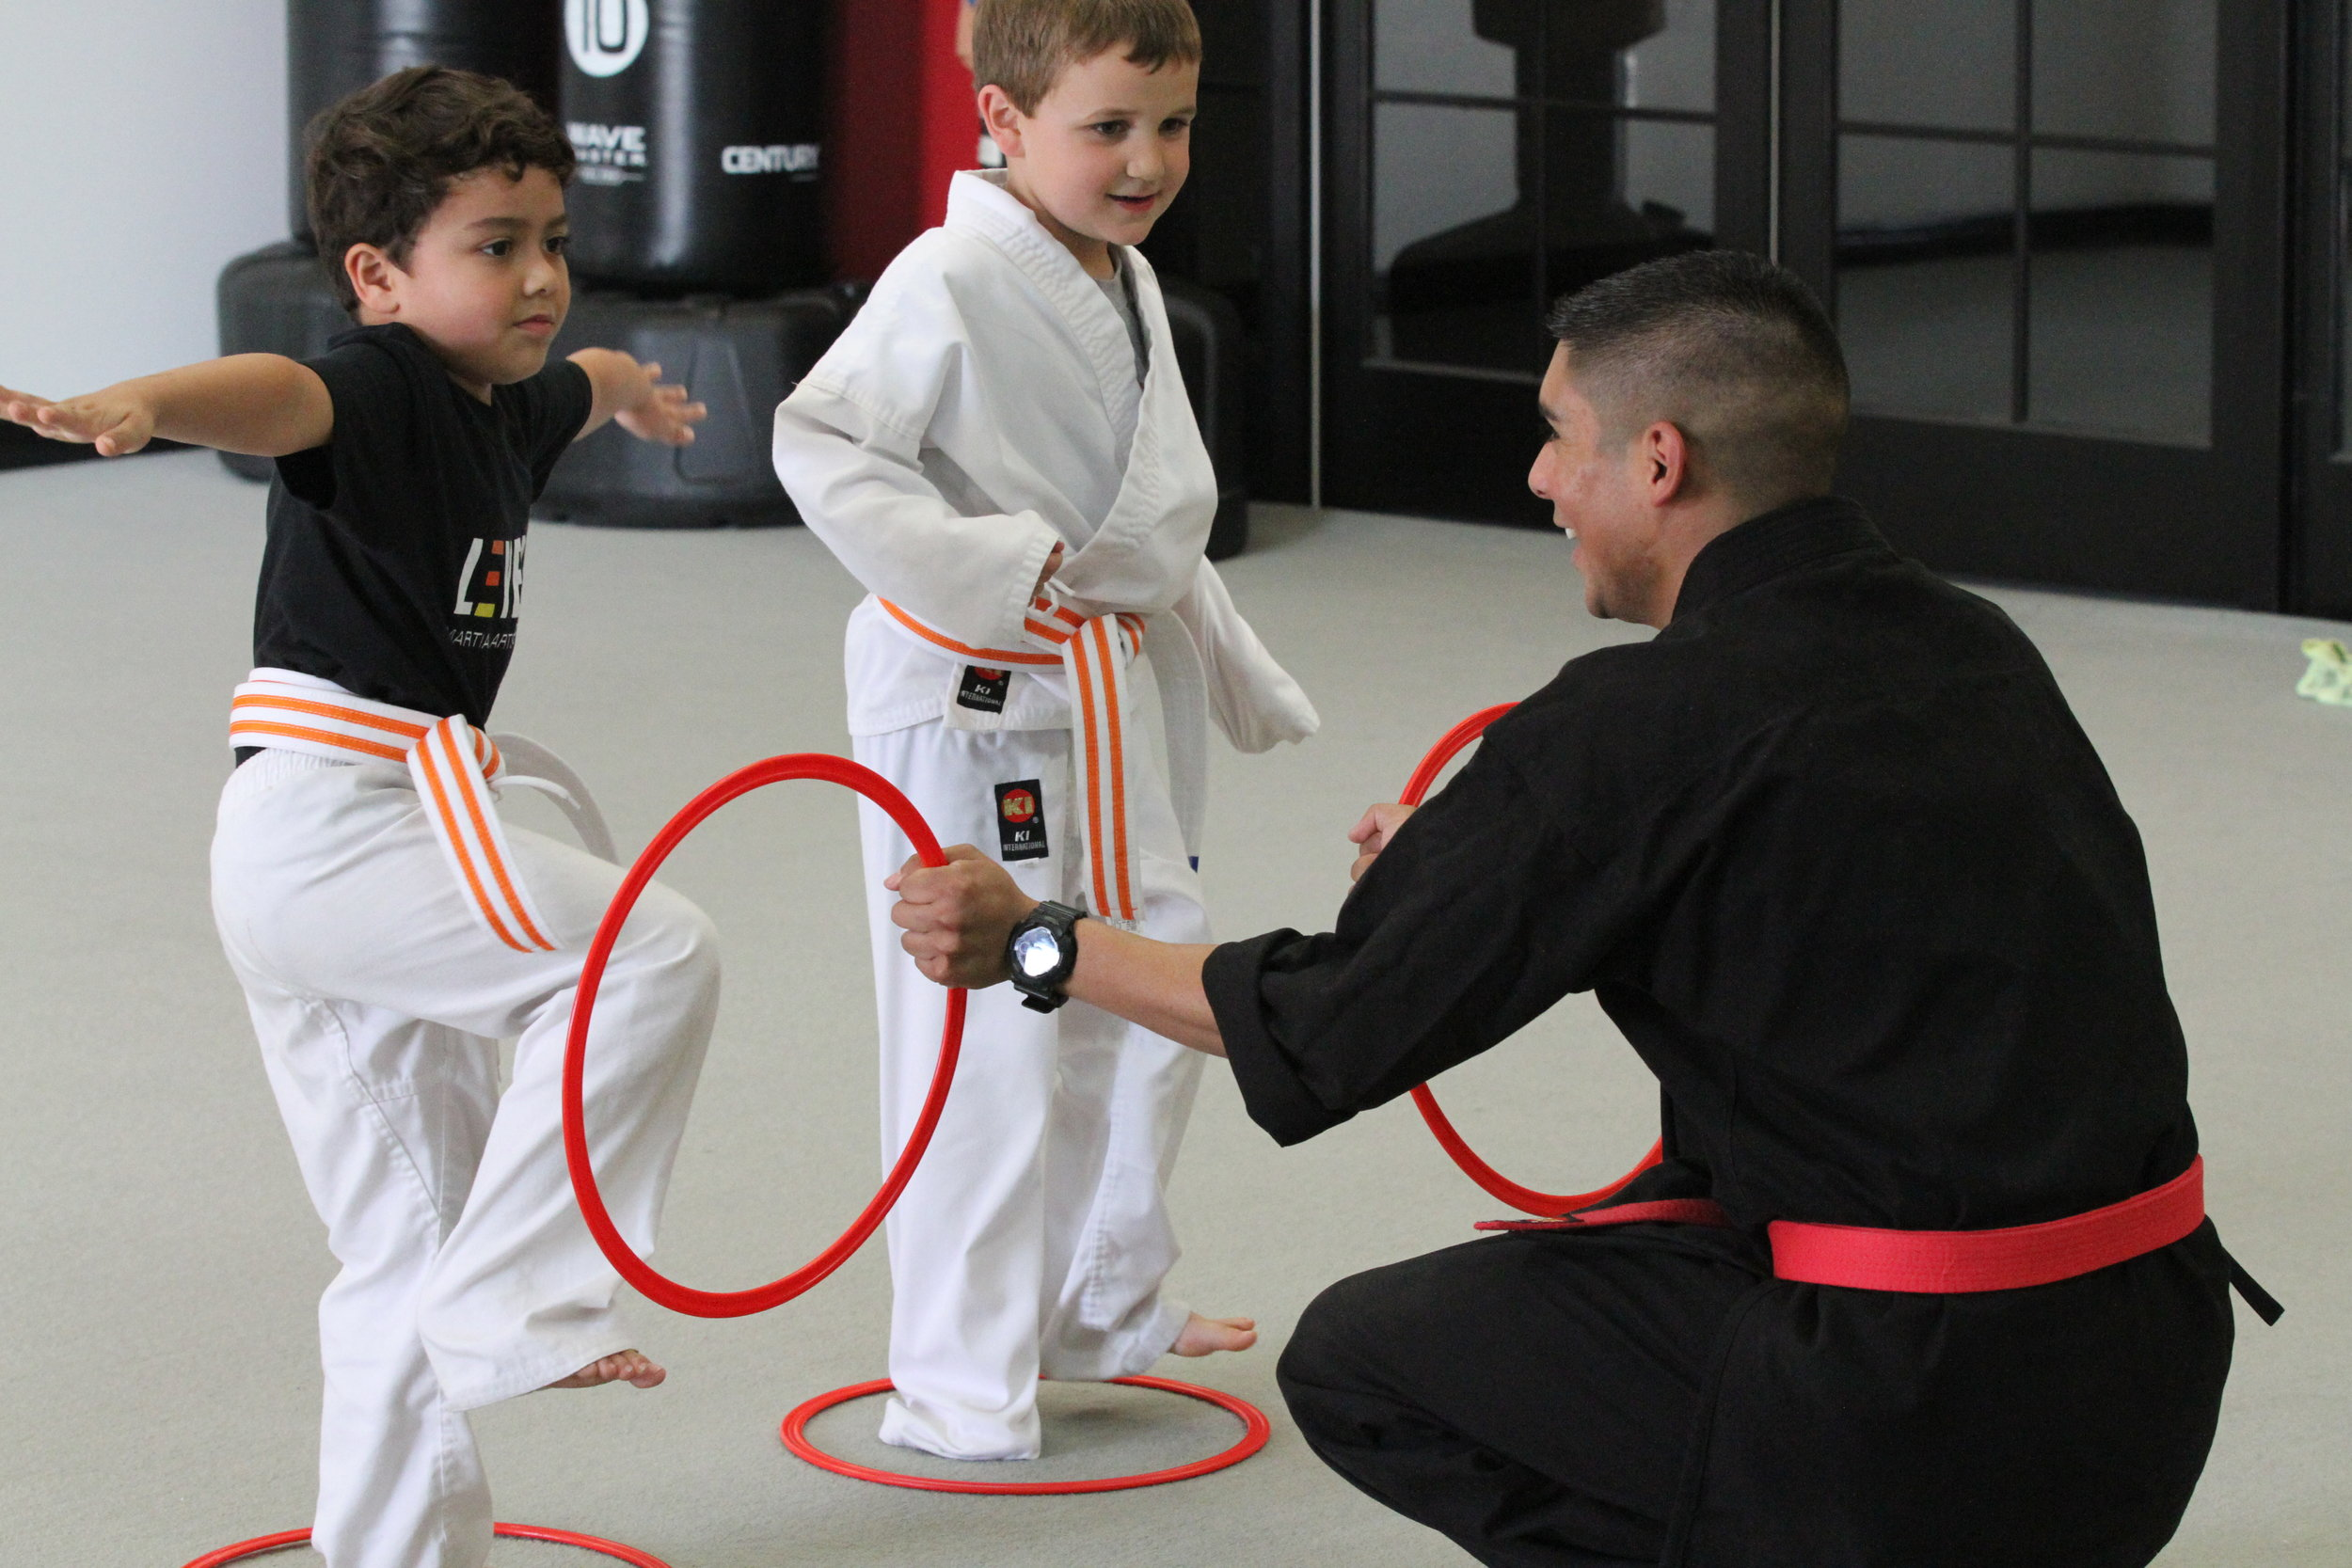 Karate classes for 5 year olds near me